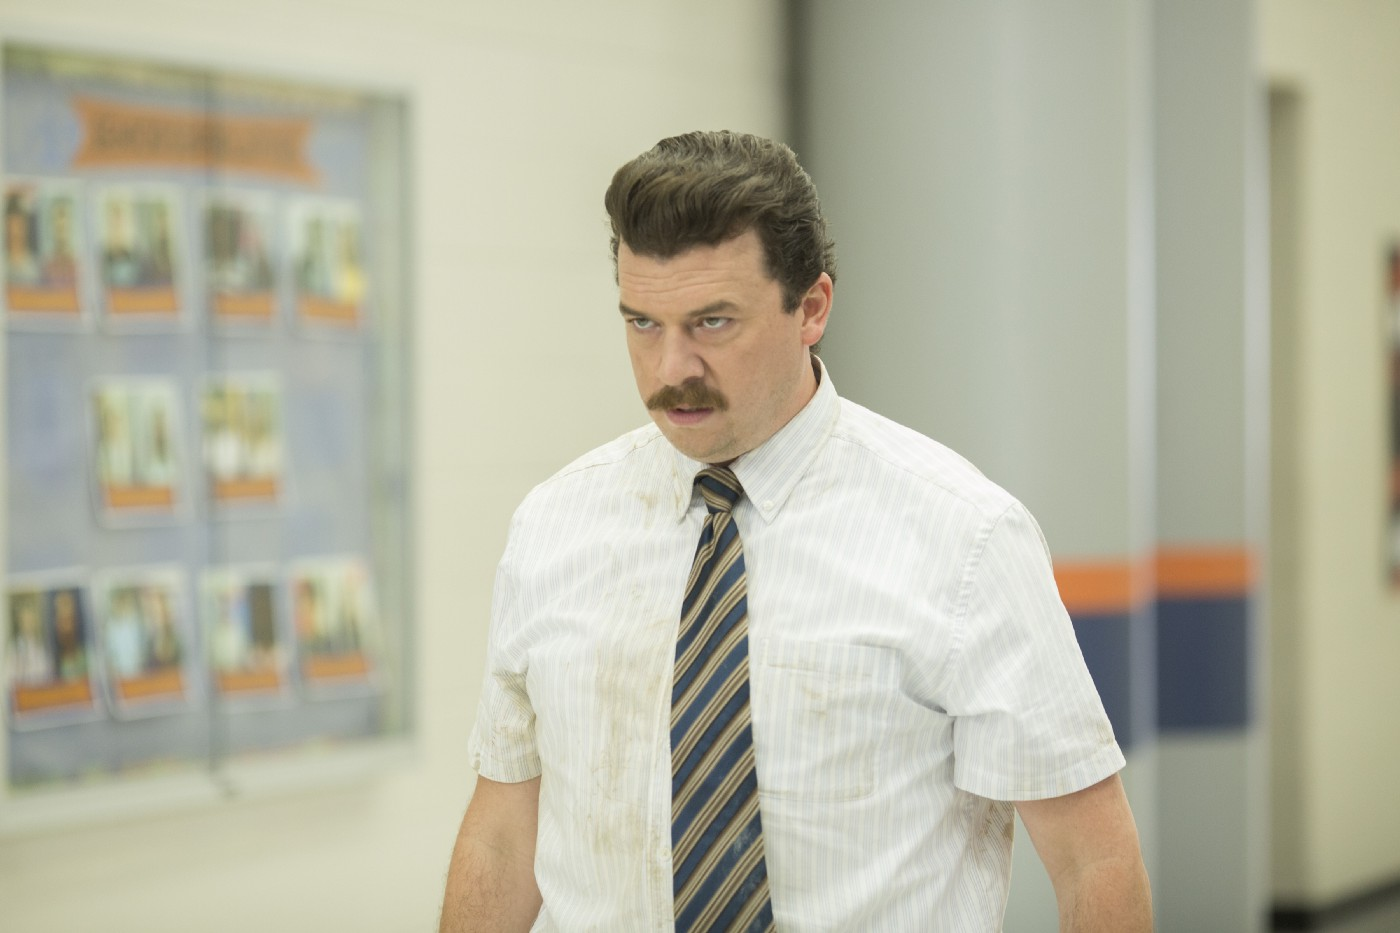 Vice Principals, season 2, episode 9 review: Twists turn to violence in this bromance finale